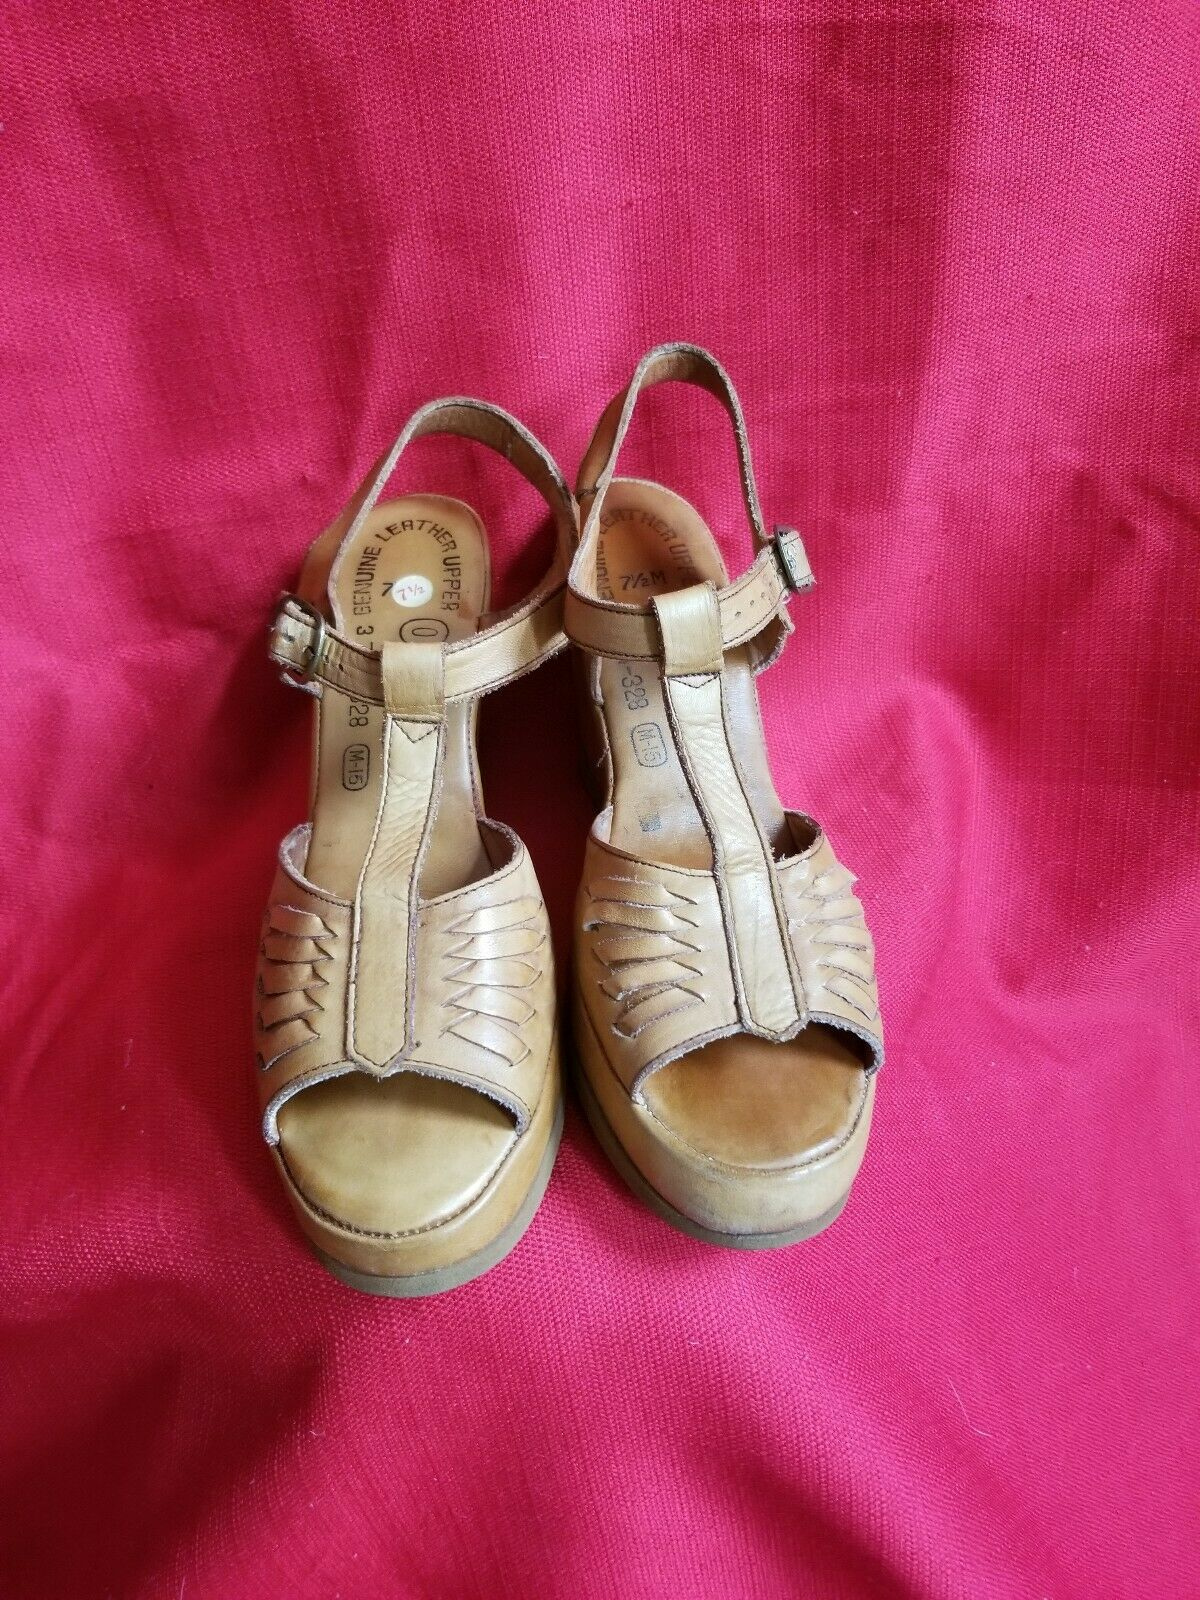 Vtg 1970s does 40s Leather Wedge Sandals Size 7.5… - image 4